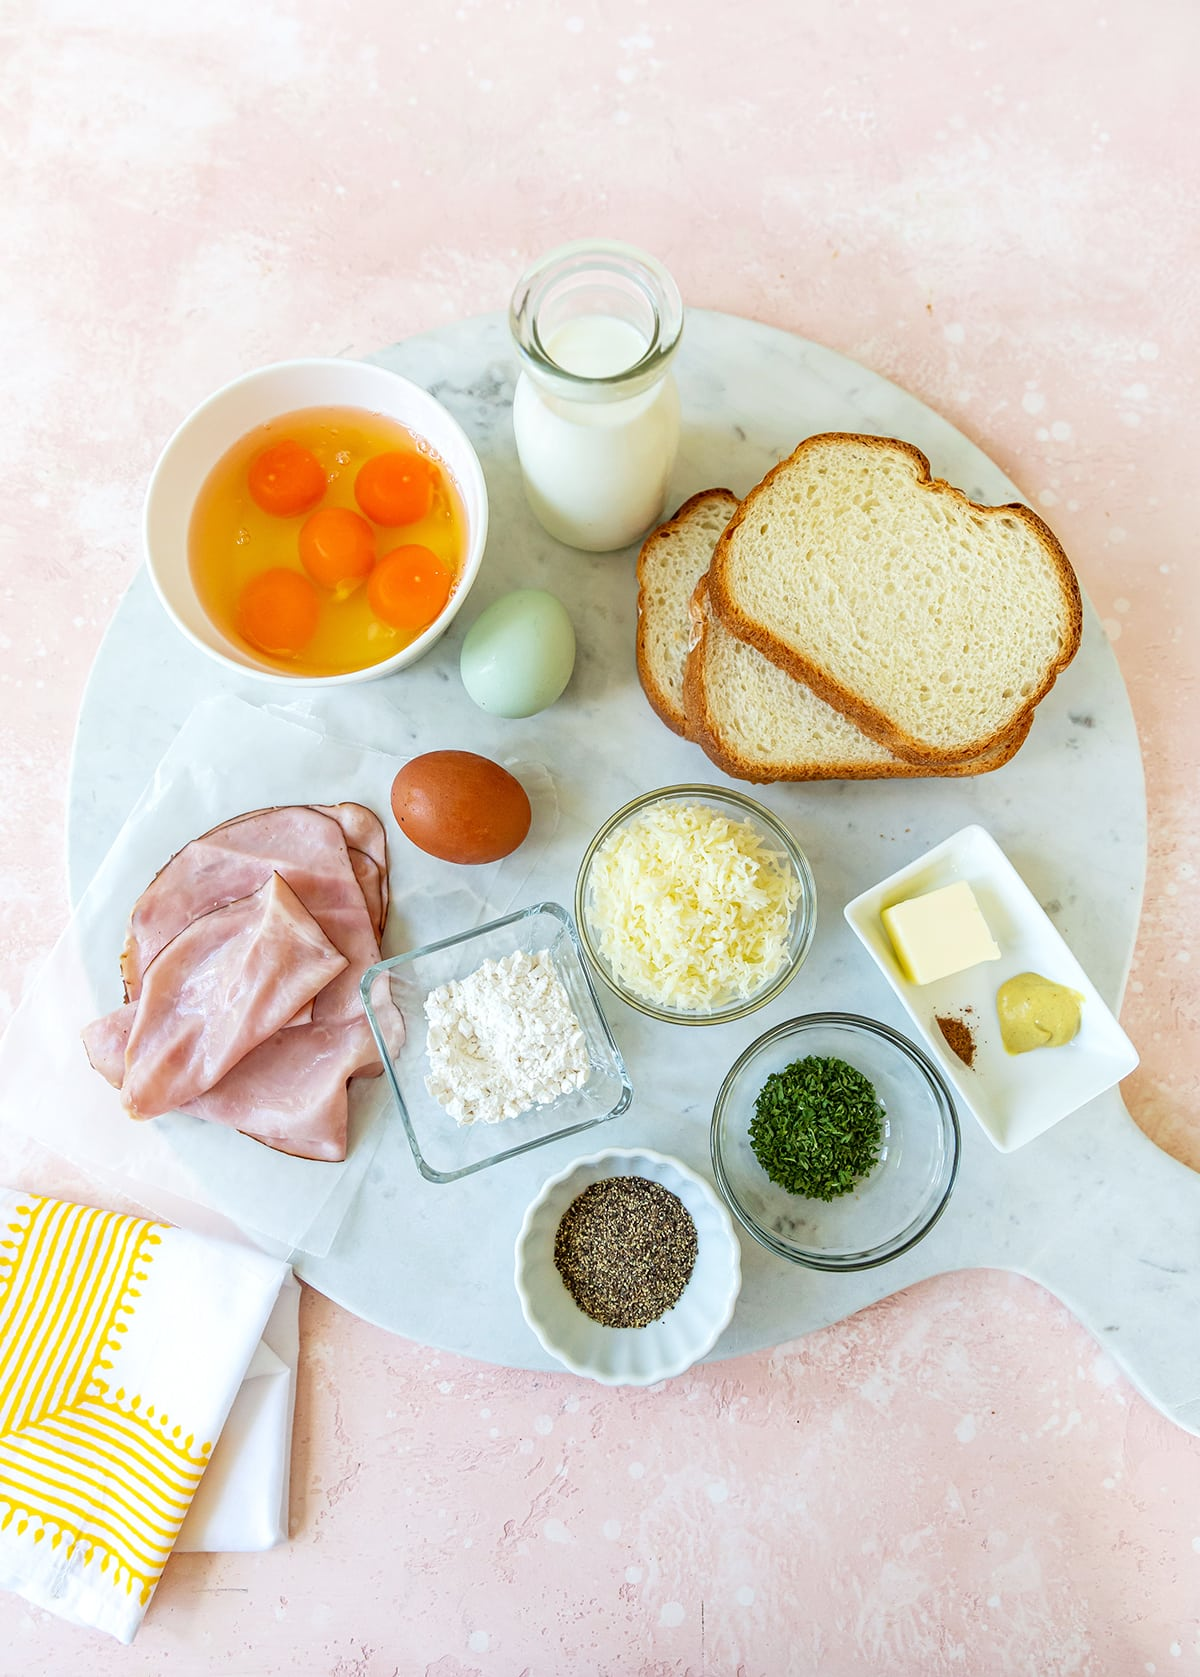 marble platter with eggs, glass of milk, bread, butter, cheese, ham and seasonings.